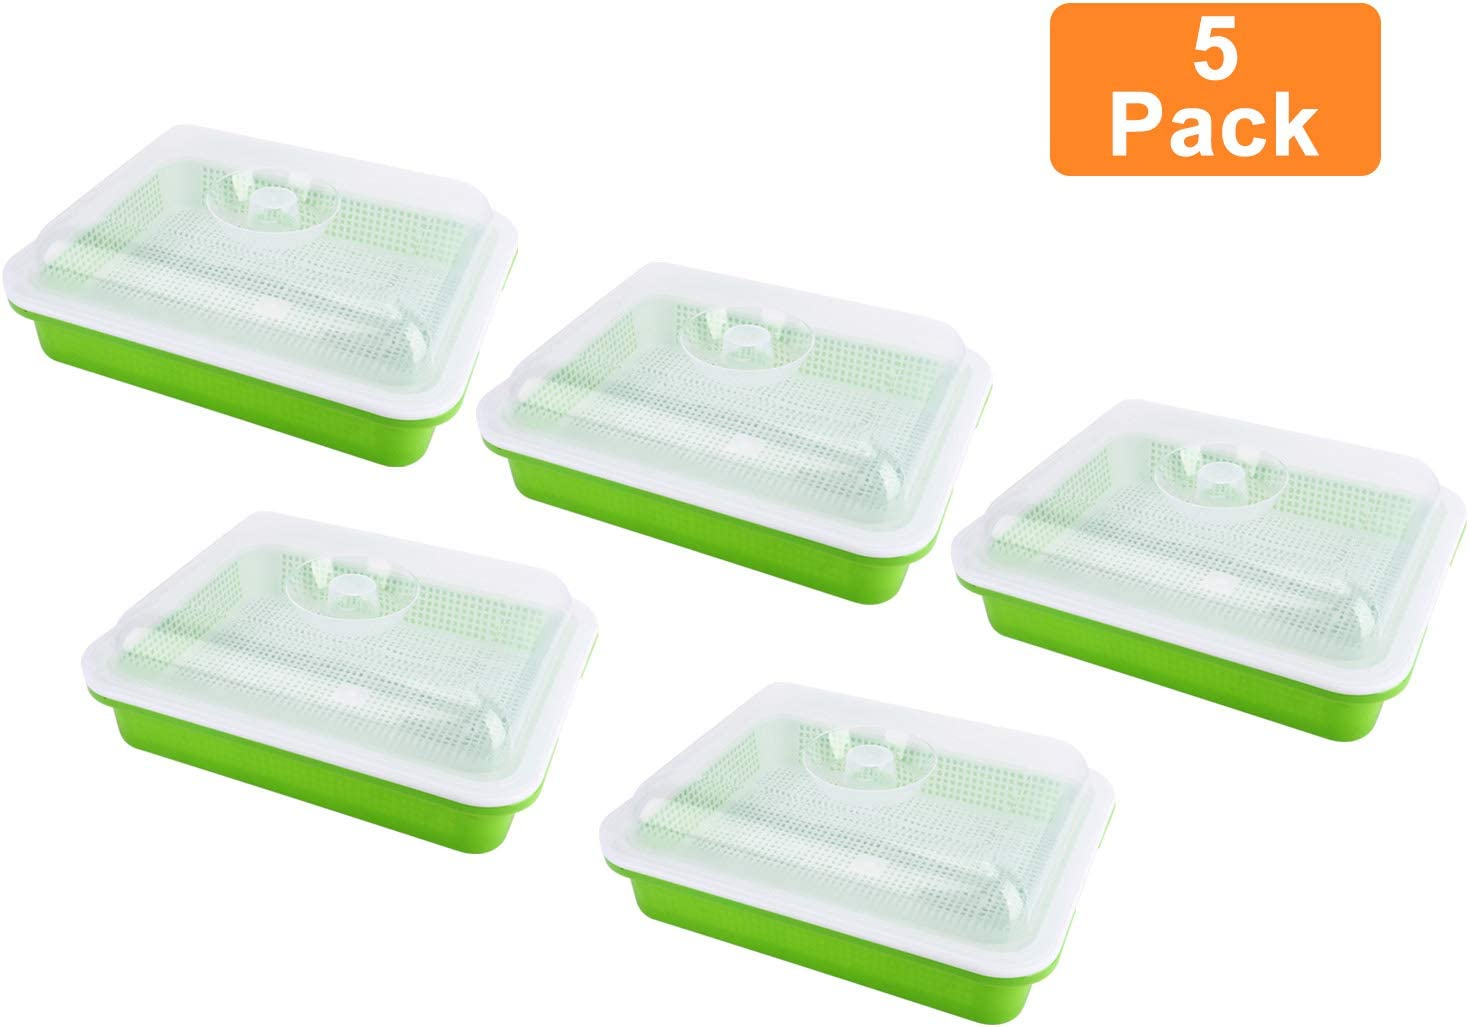 Homend Seed Sprouter Tray with Lid, Seed Germination Tray BPA Free Nursery Tray for Seedling Planting Great for Garden Home Office (5)